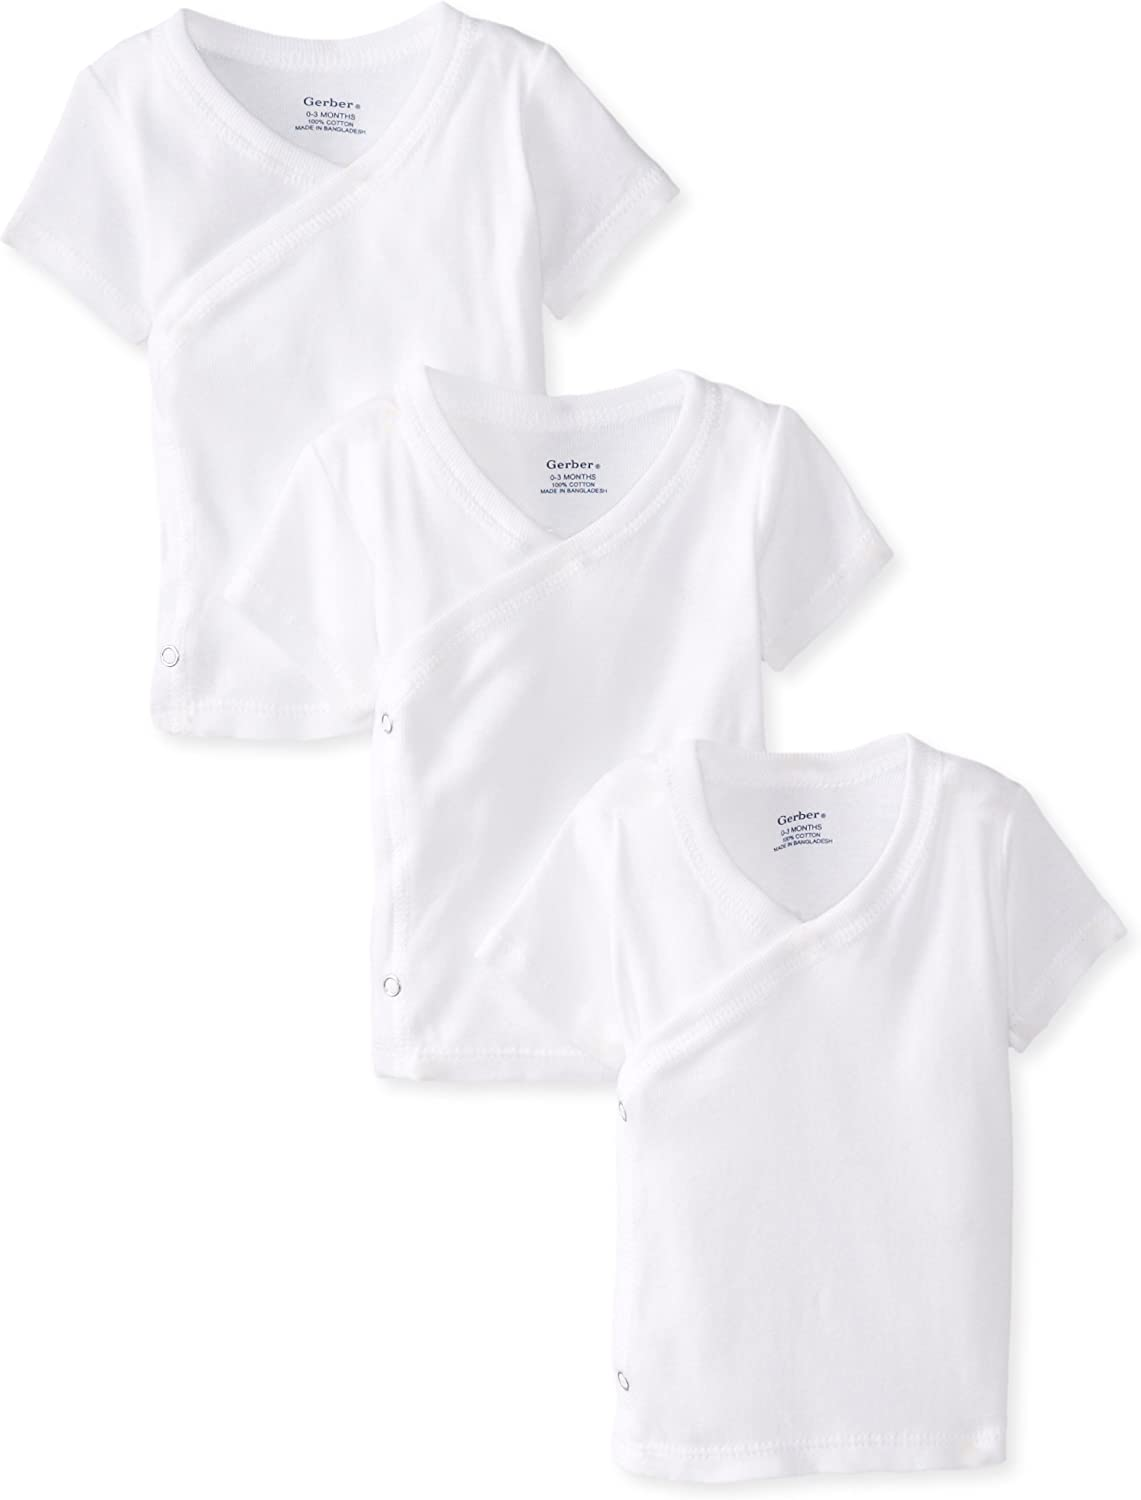 Gerber Unisex-Baby Newborn 3 Pack Short Sleeve Side Snap Shirt, White, 0-3 Months: Infant And Toddler Shirts: Clothing